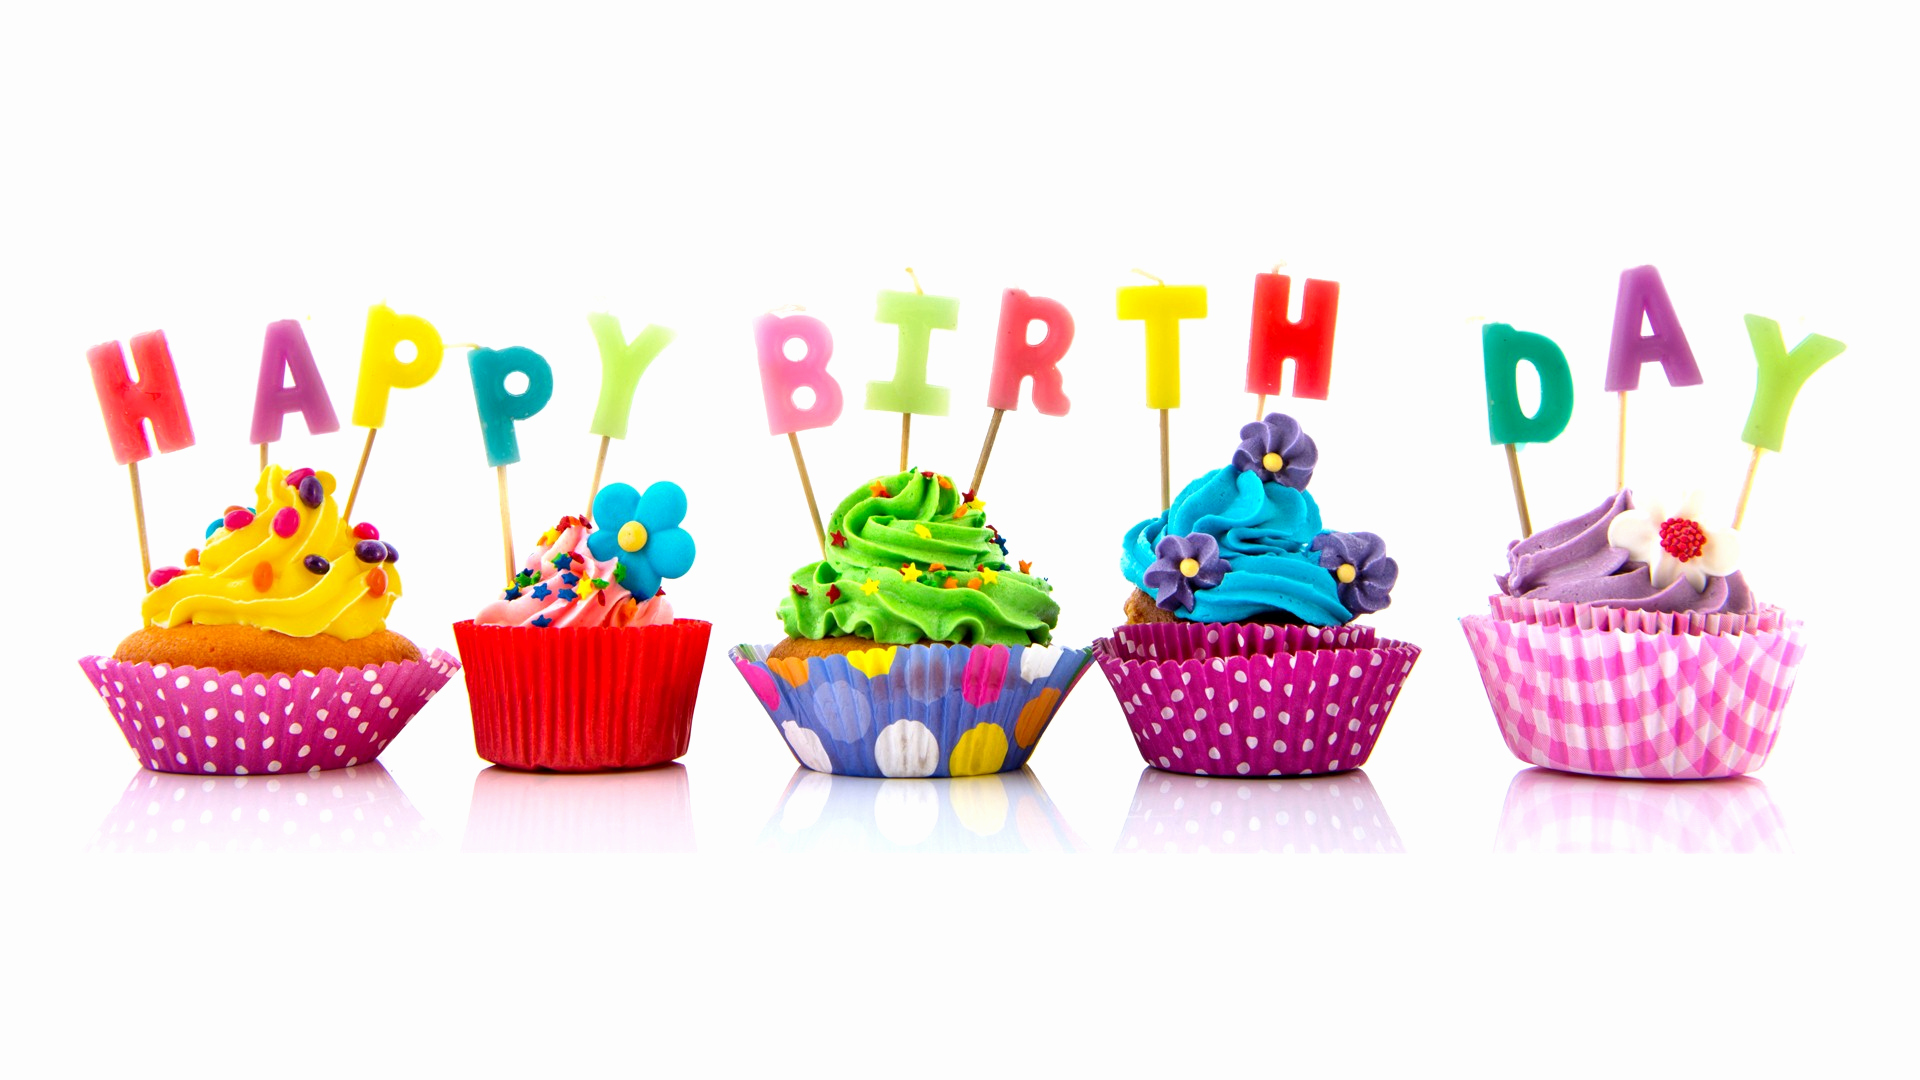 Happy Bday Wallpapers Free Best Of Happy Birthday Backgrounds